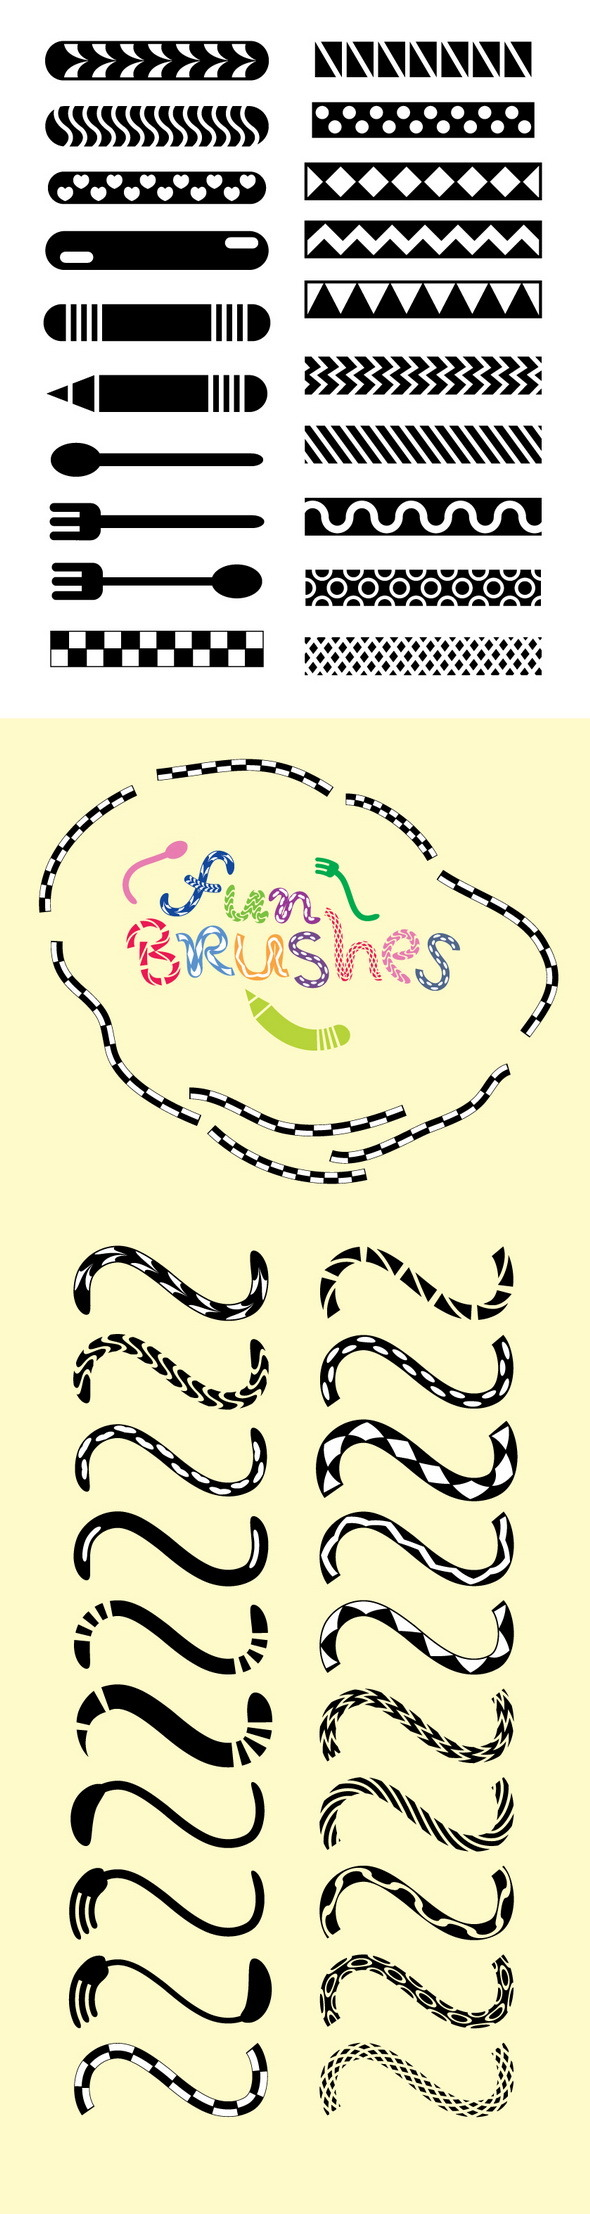 Fun Brushes for Illustrator - Miscellaneous Brushes